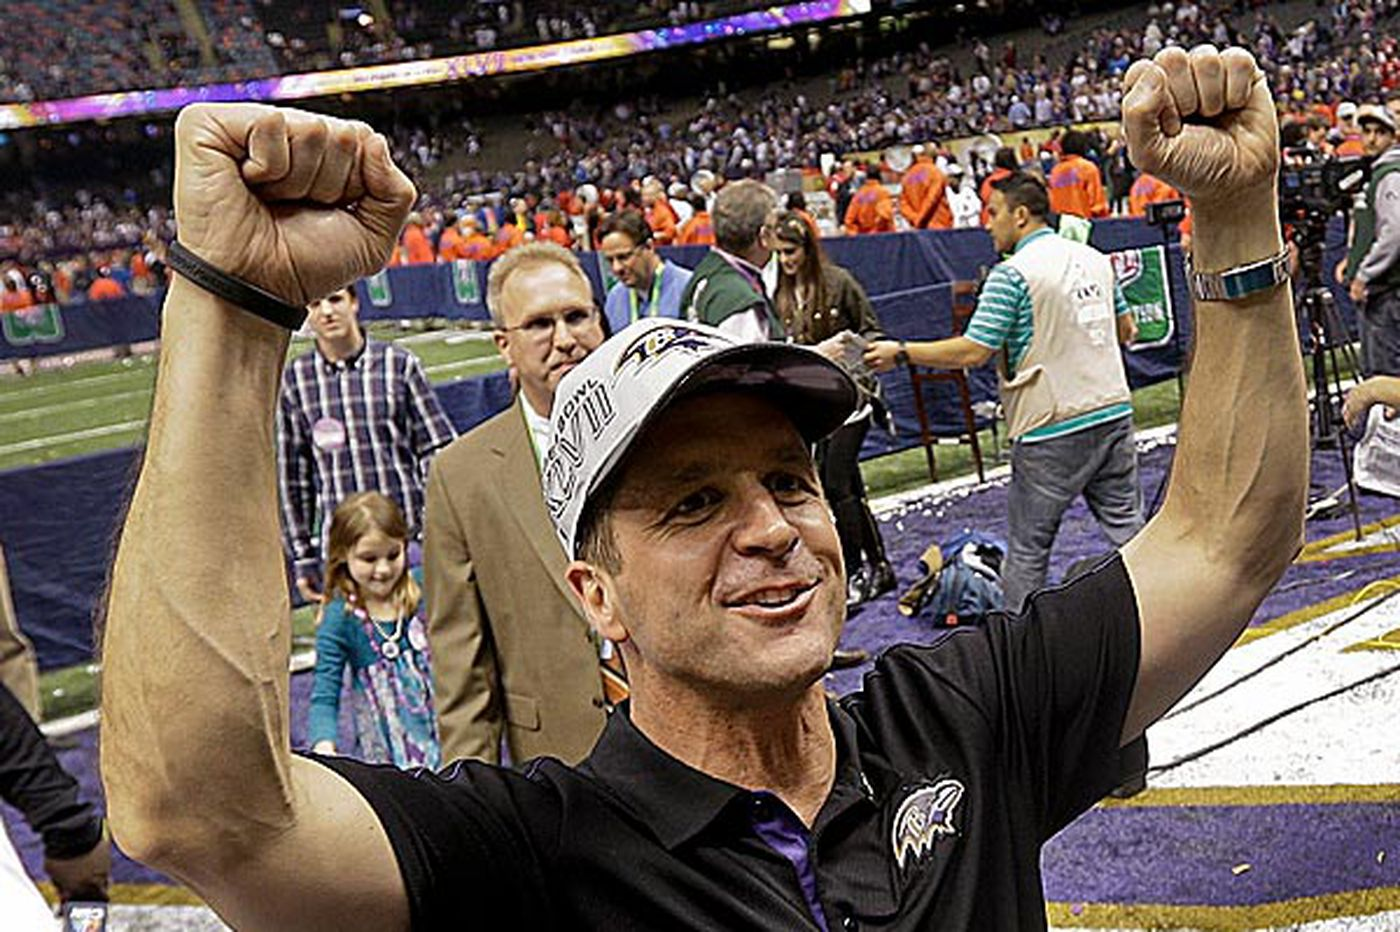 Ravens head coach John Harbaugh waited for right opportunity - and it paid off